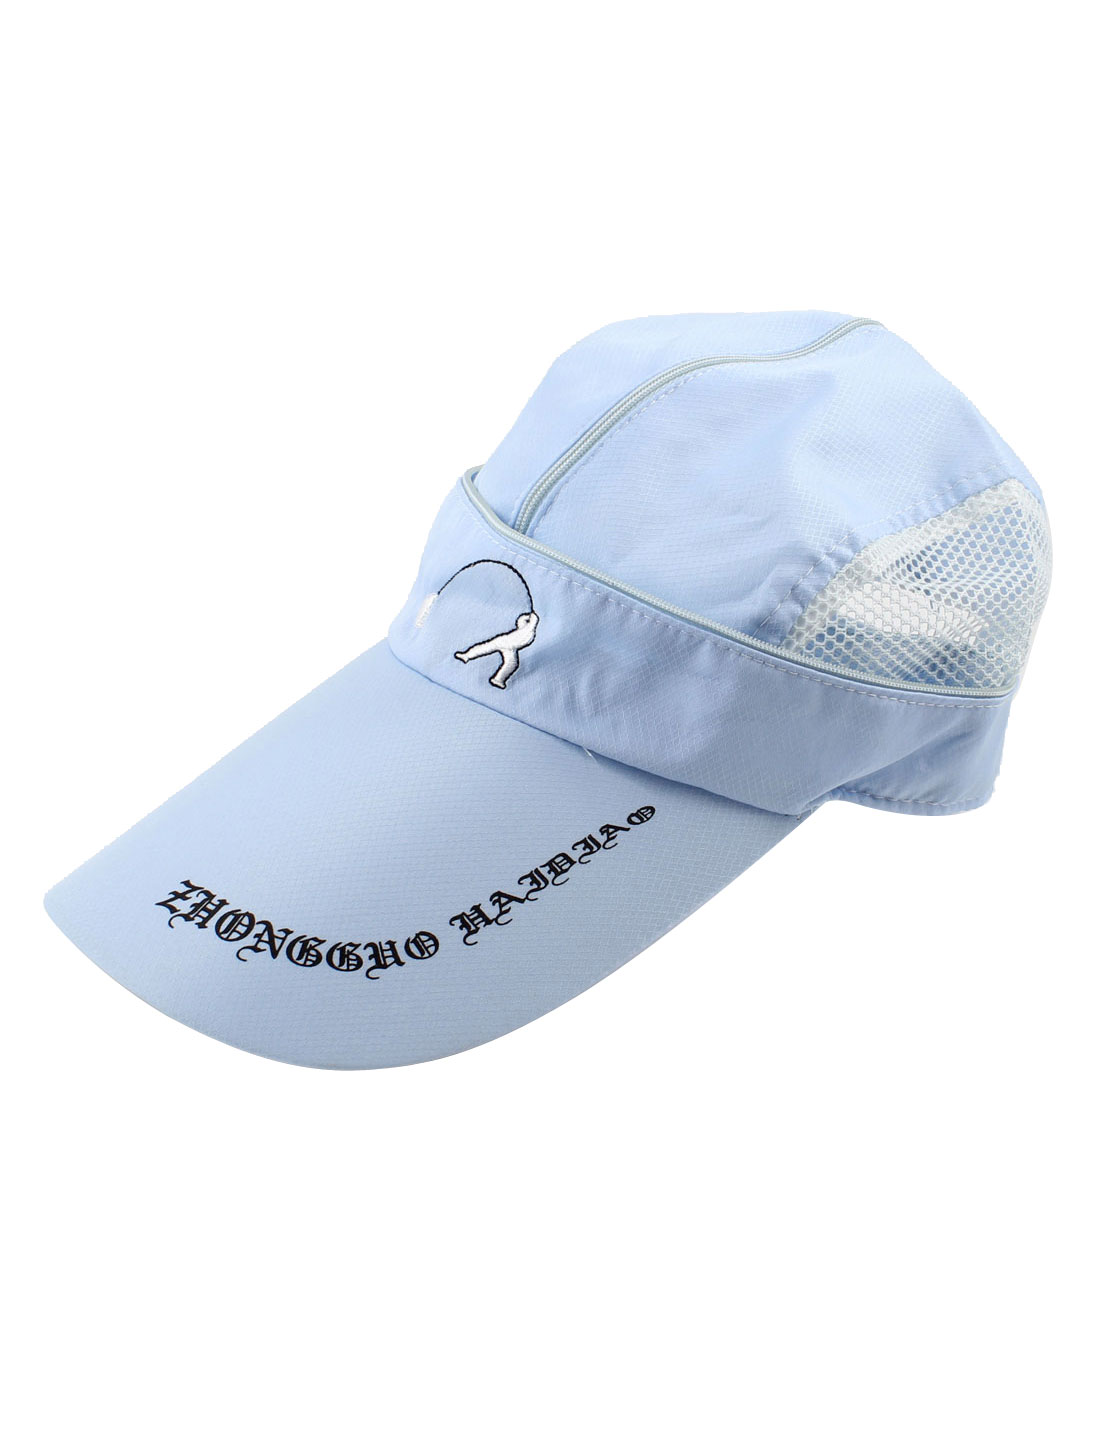 Men Lady Letter Print Adjustable Sports Headwear Sun Visor Cap Hat Baby Blue